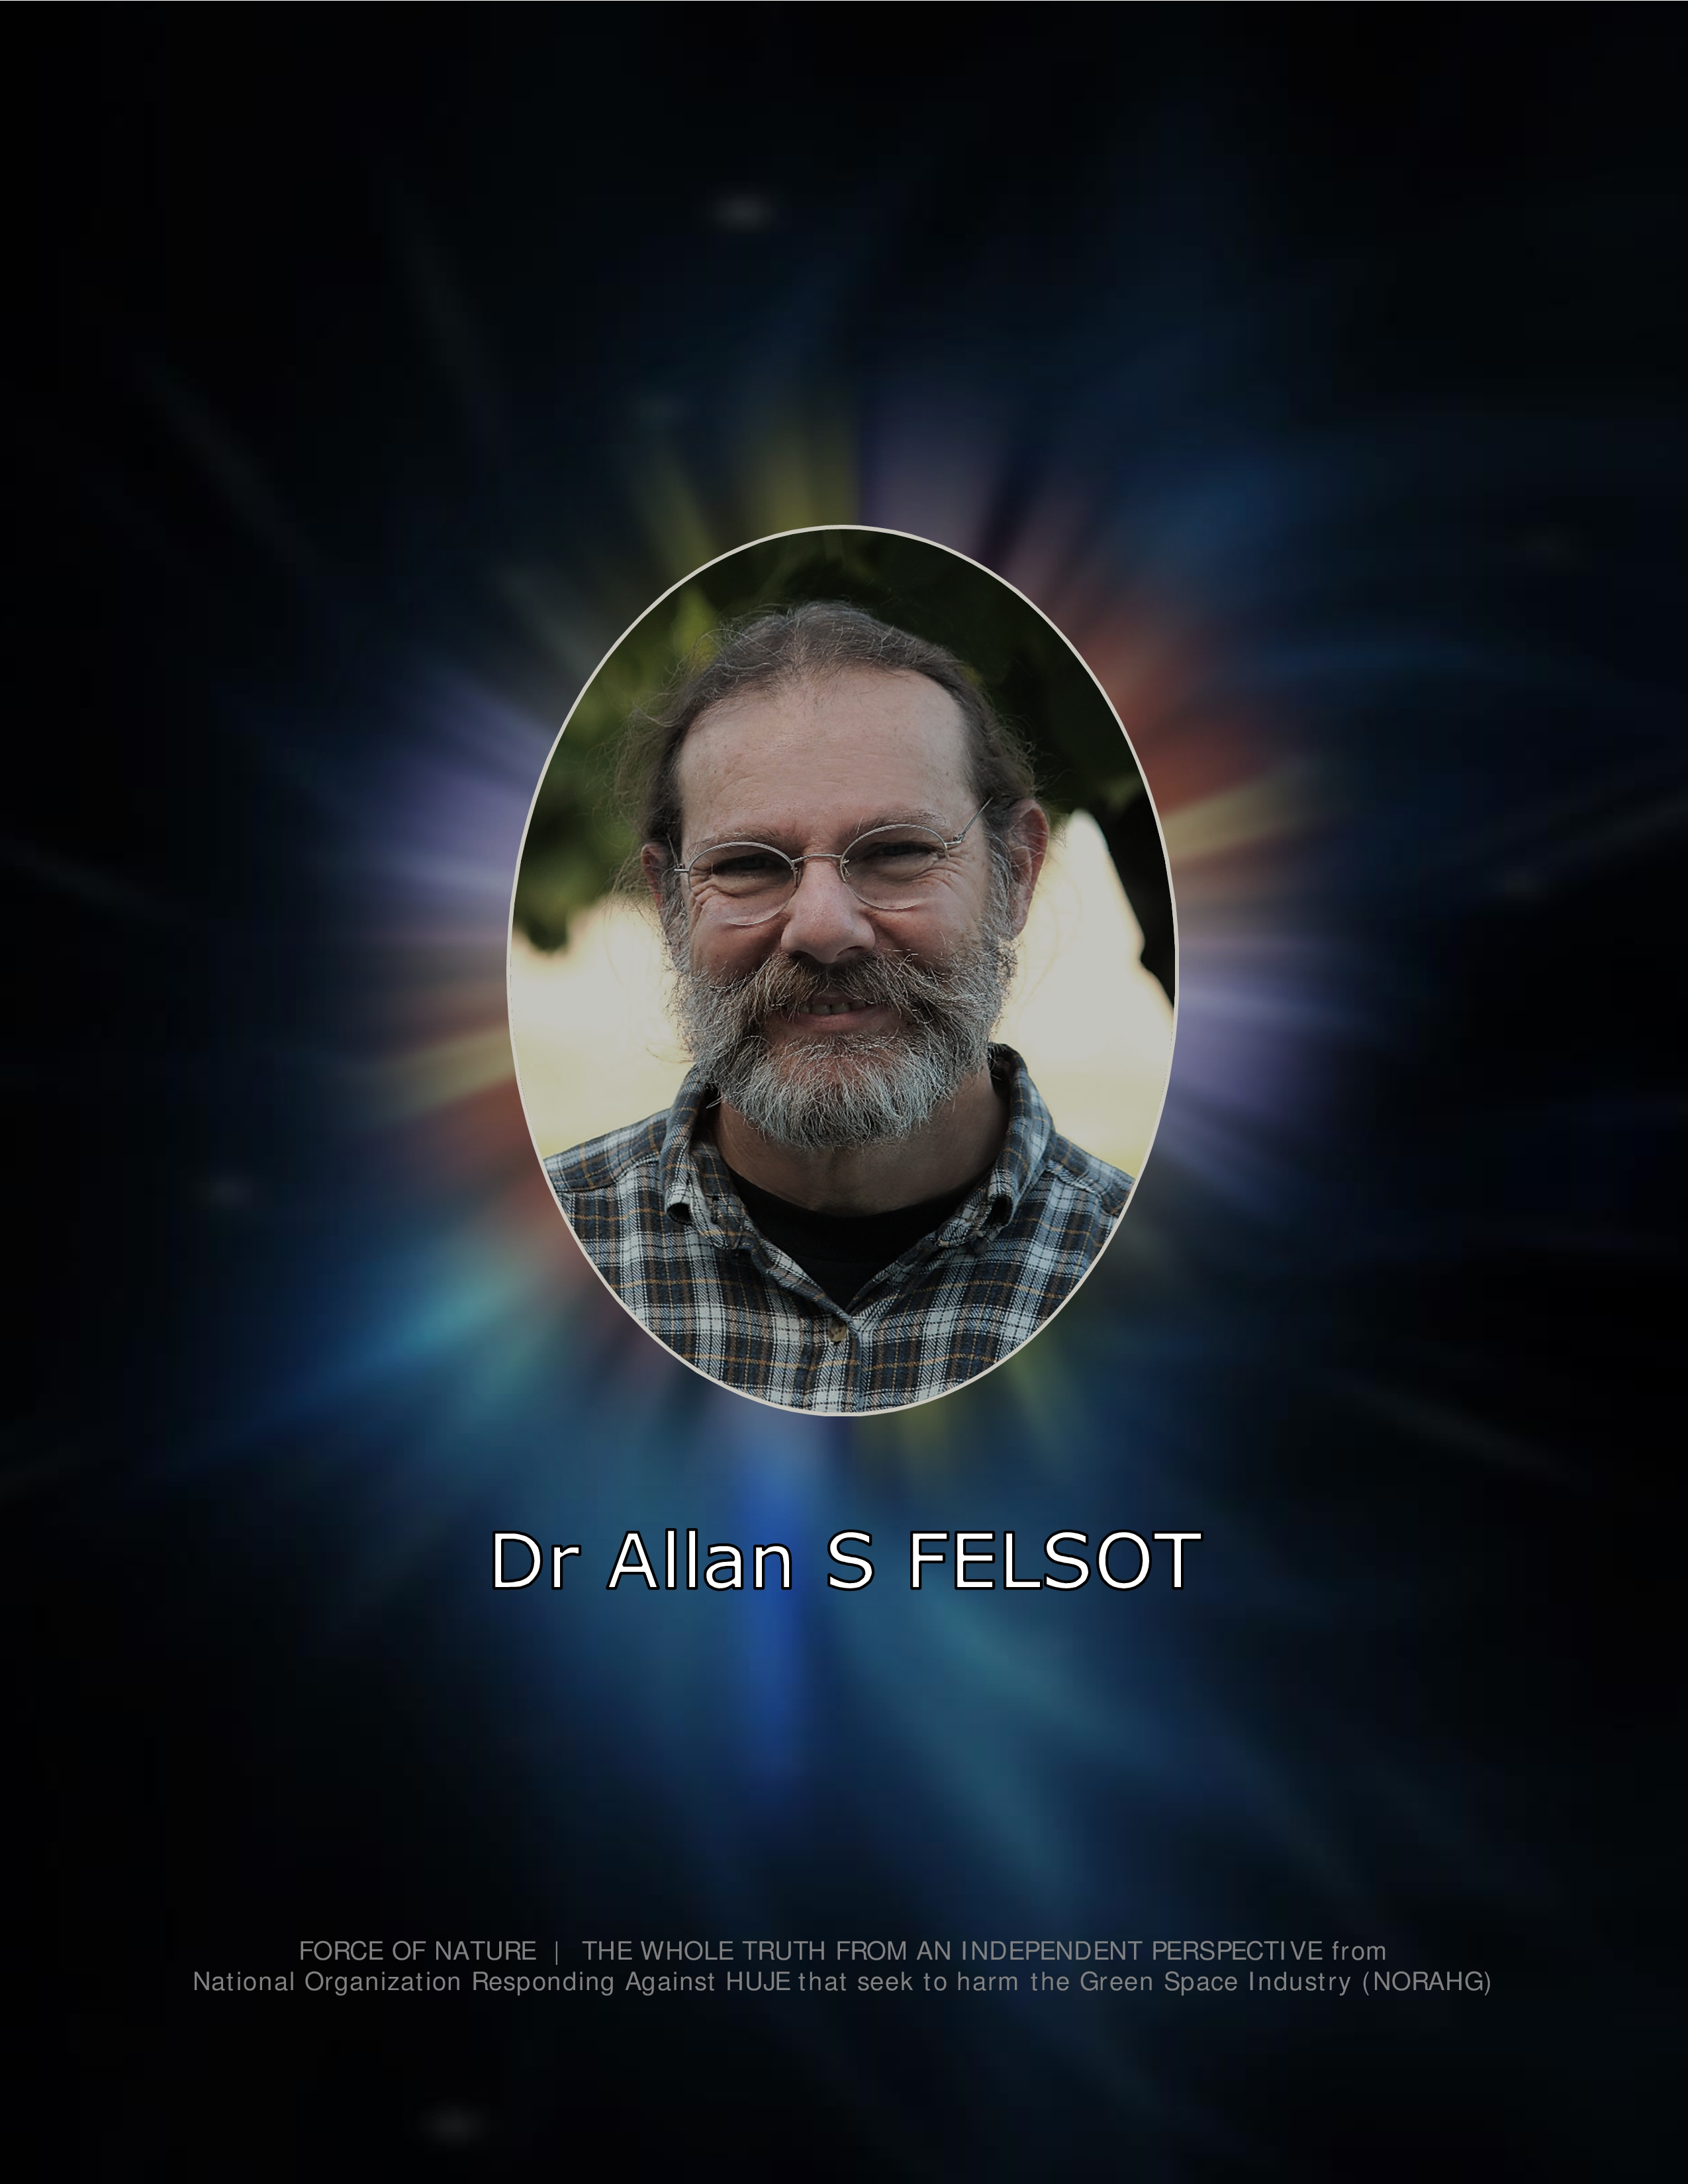 Dr Allan S Felsot -- American Council on Science and Health